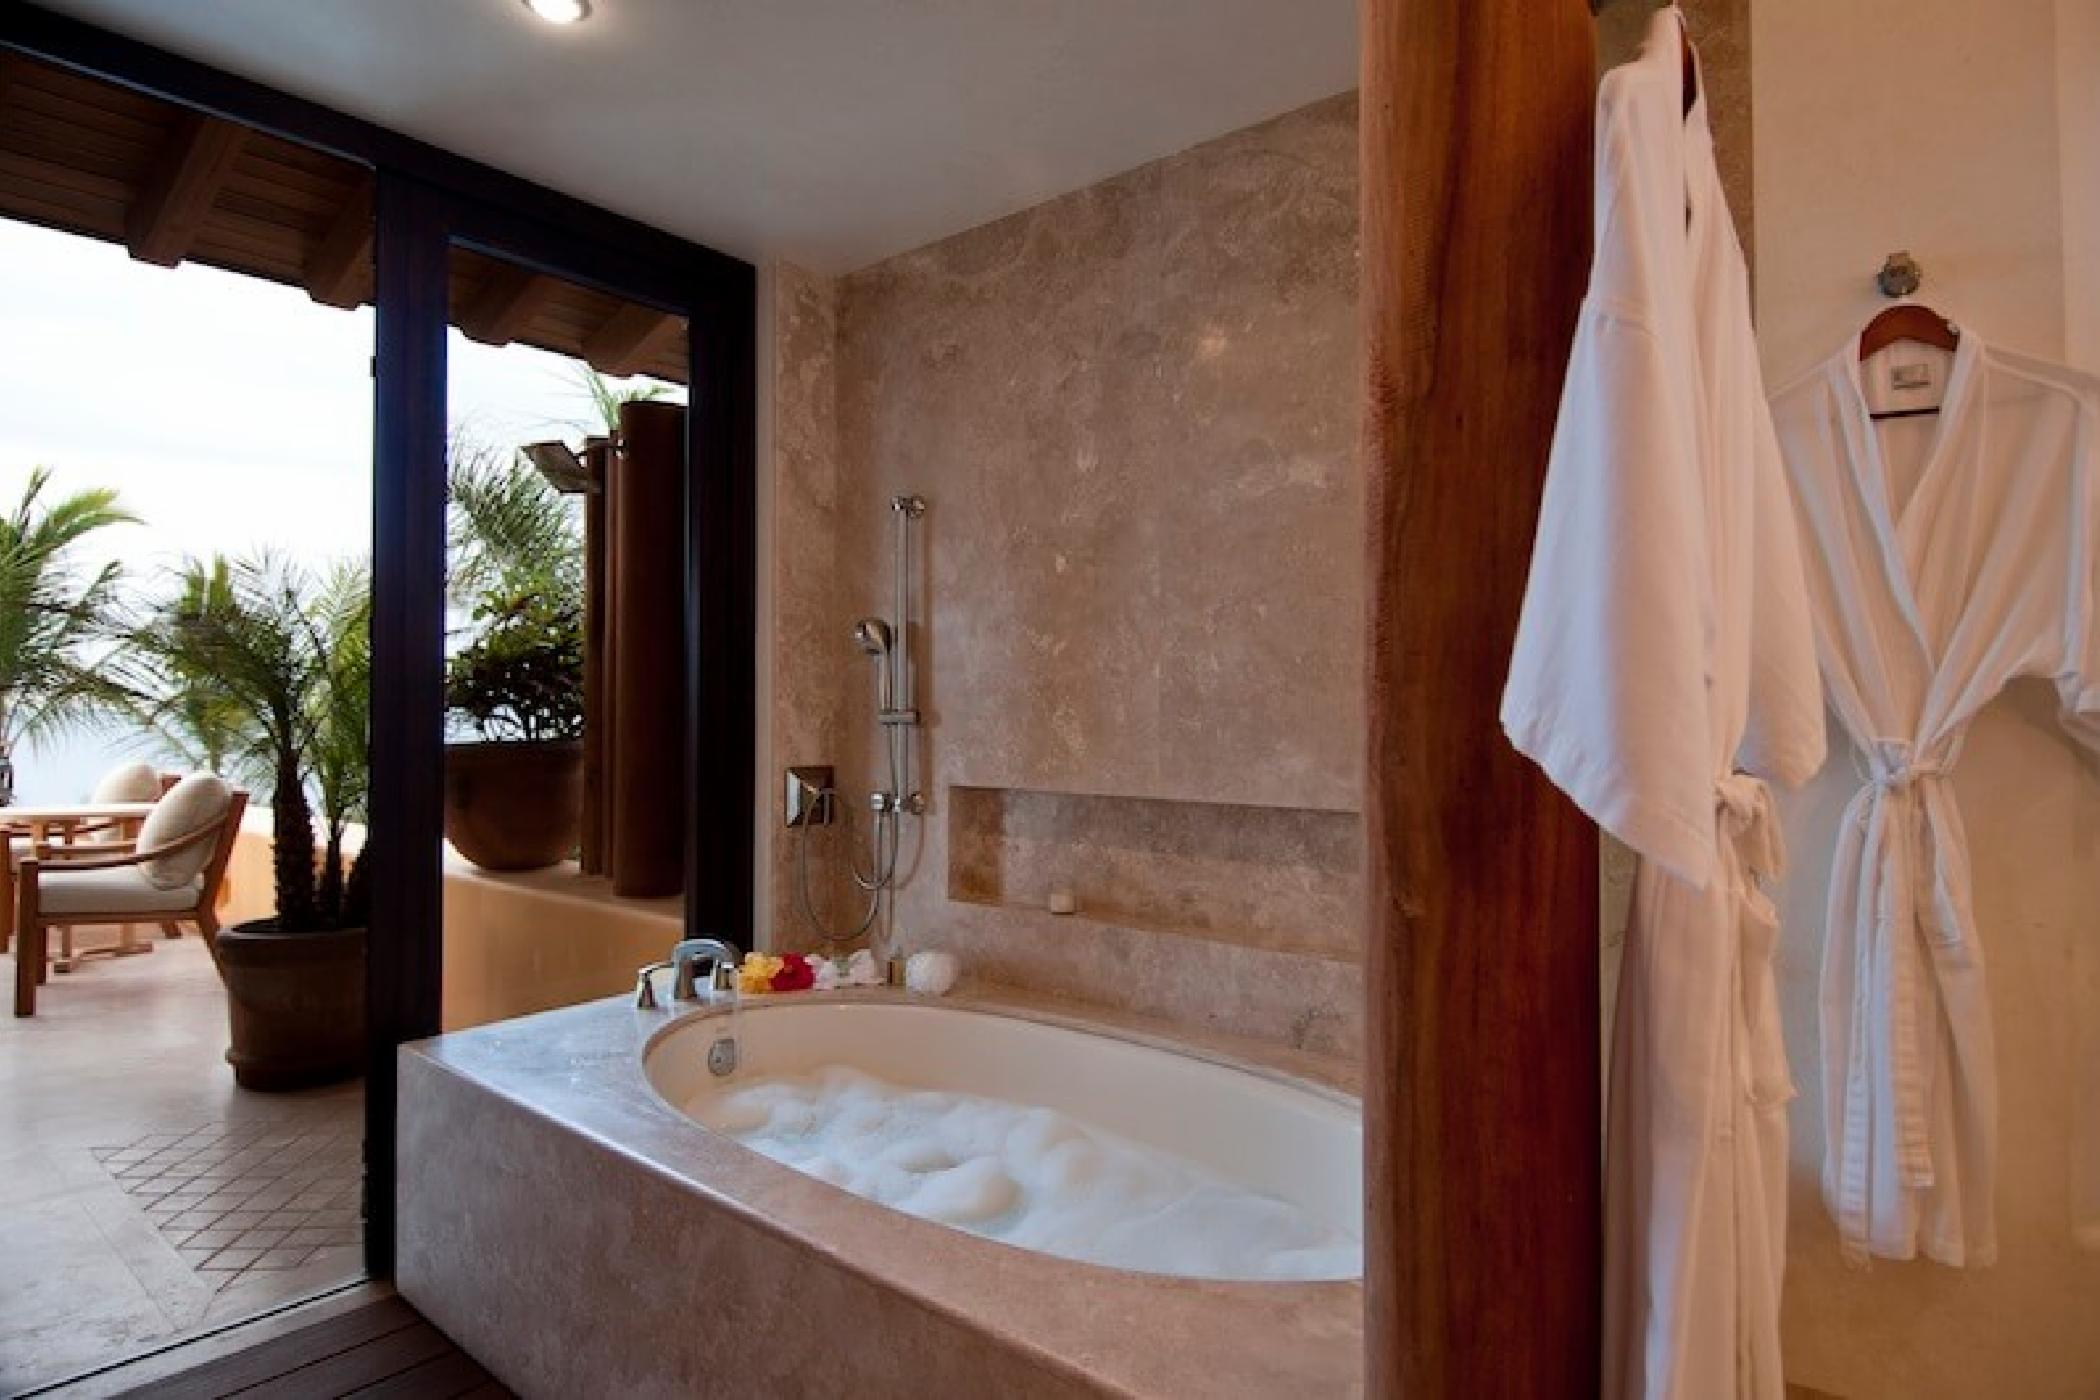 The master bath has indoor and outdoor showers.